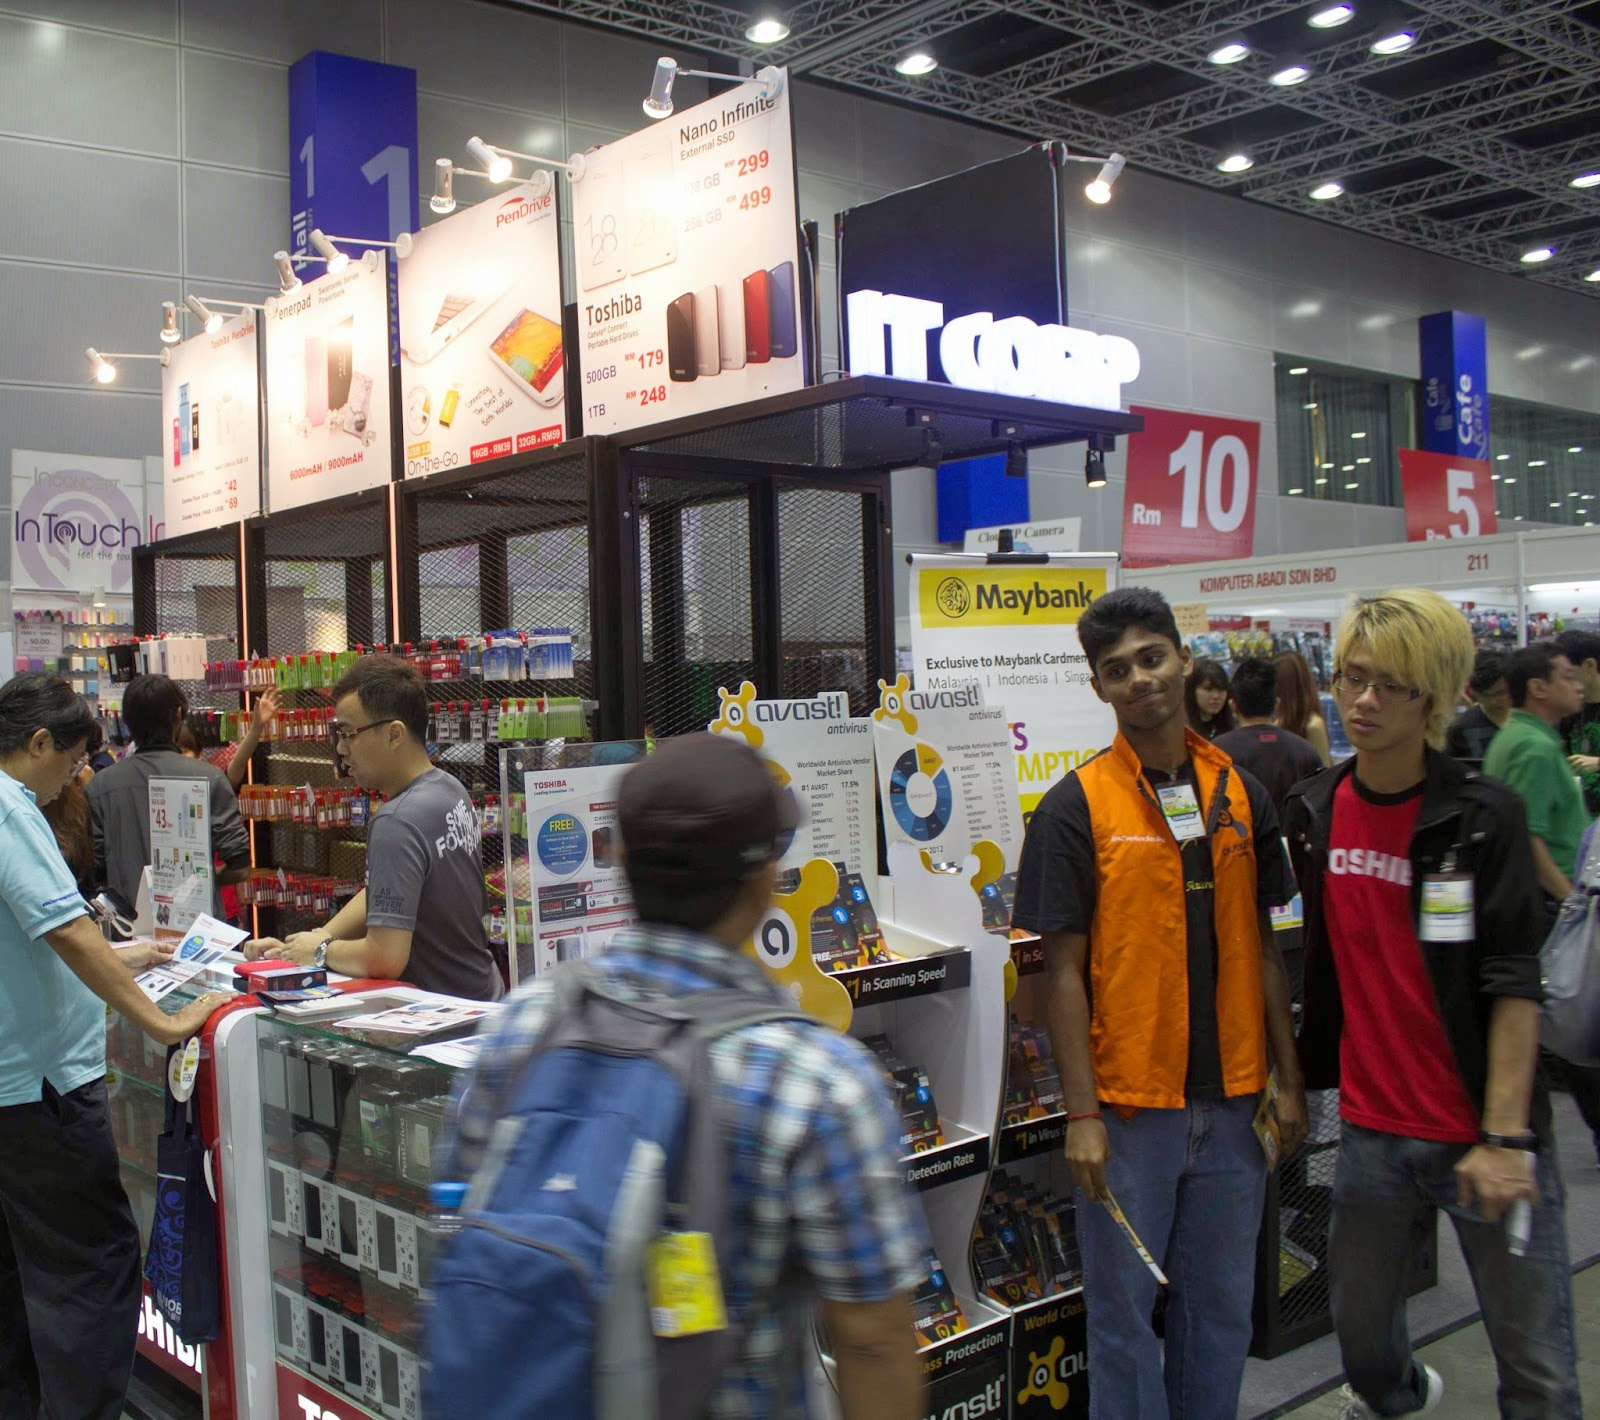 Coverage of PIKOM PC Fair 2014 @ Kuala Lumpur Convention Center 309